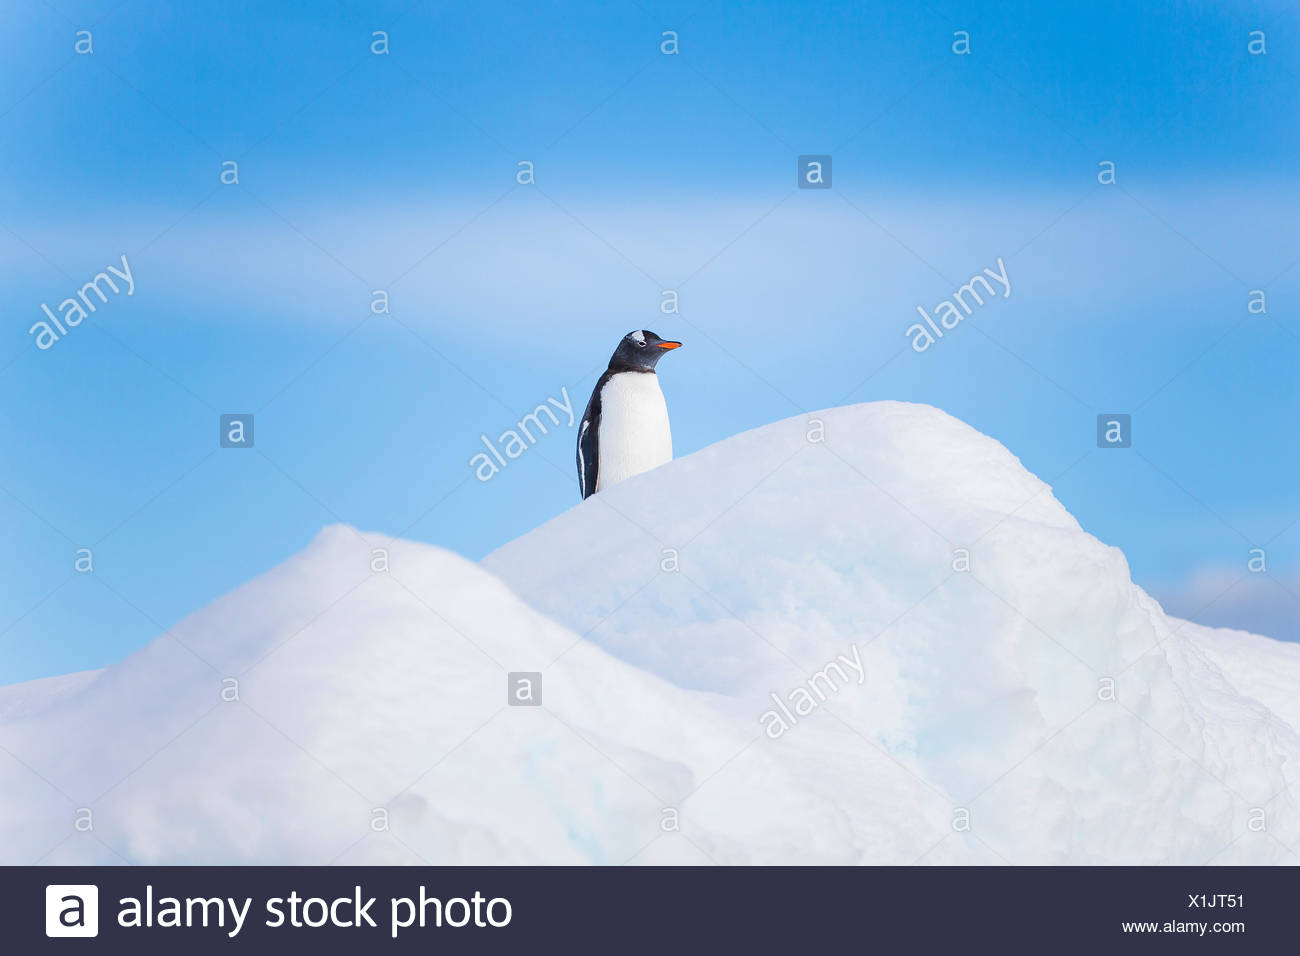 A lone penguin sits on top of an iceberg in Antarctica. - Stock Image